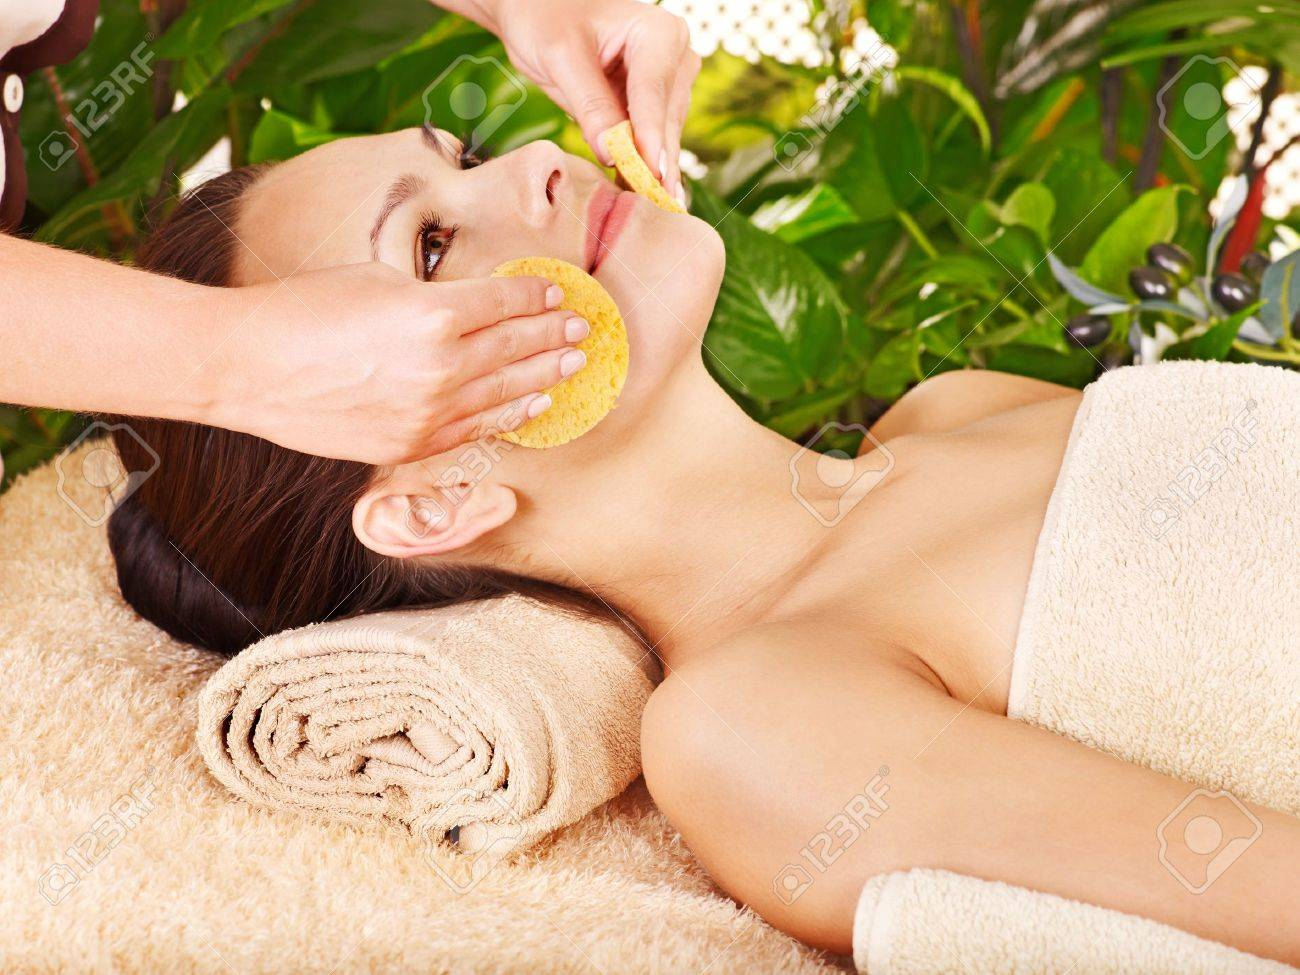 Woman Getting Facial Massage In Tropical Beauty Spa Stock Photo